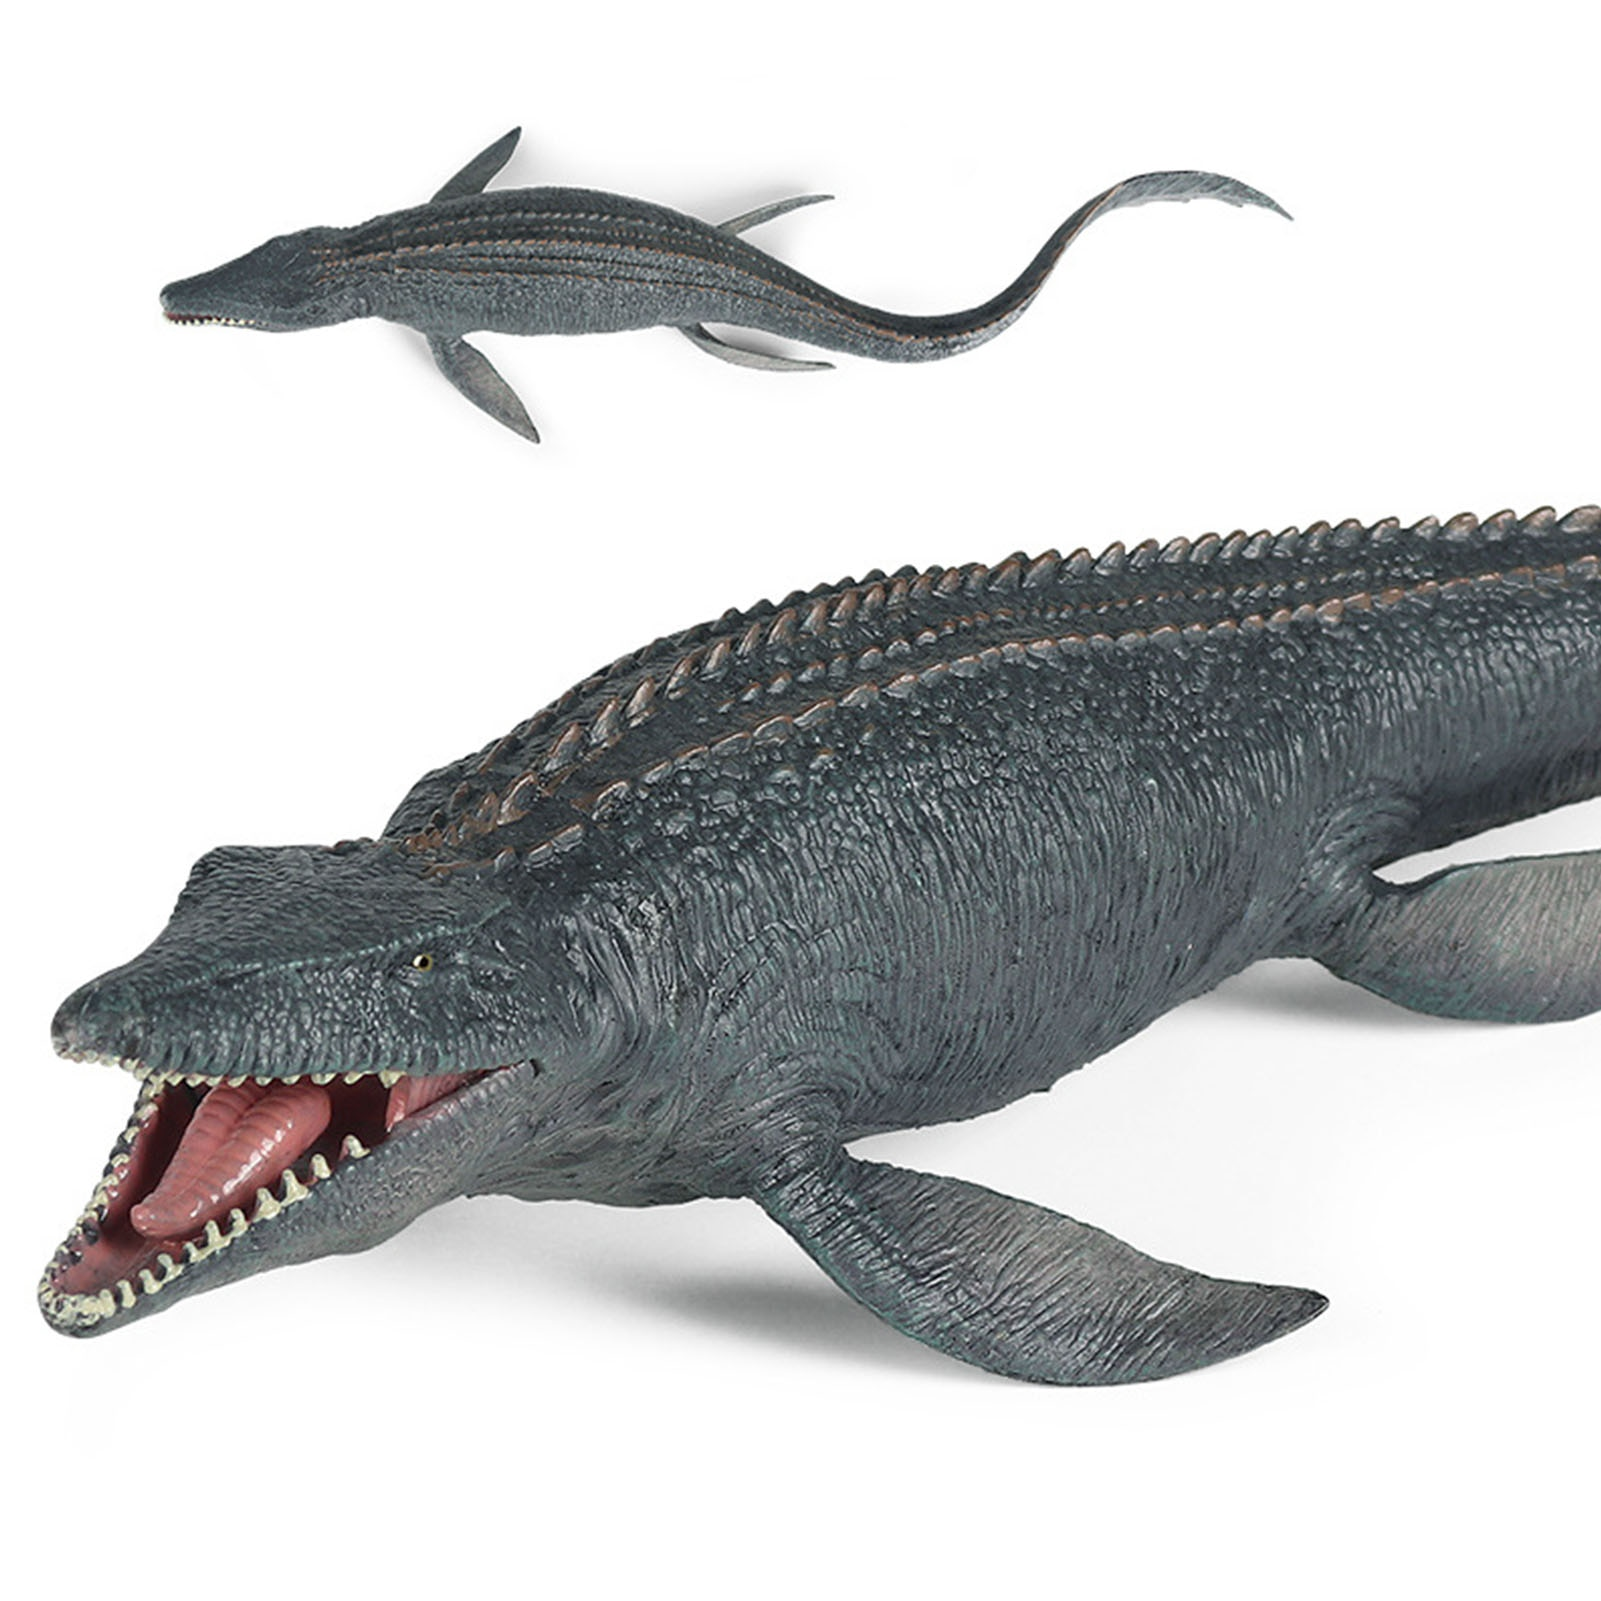 Mosasaurus Dinosaur Figure Realistic Ocean Animal Model Dino Figures Toy Simulation Dinosaur Action Figures Animal Models lifelike dinosaur model static solid mosasaurus dinosaur realistic figures perfect toys decoration for party favor kid toy gift